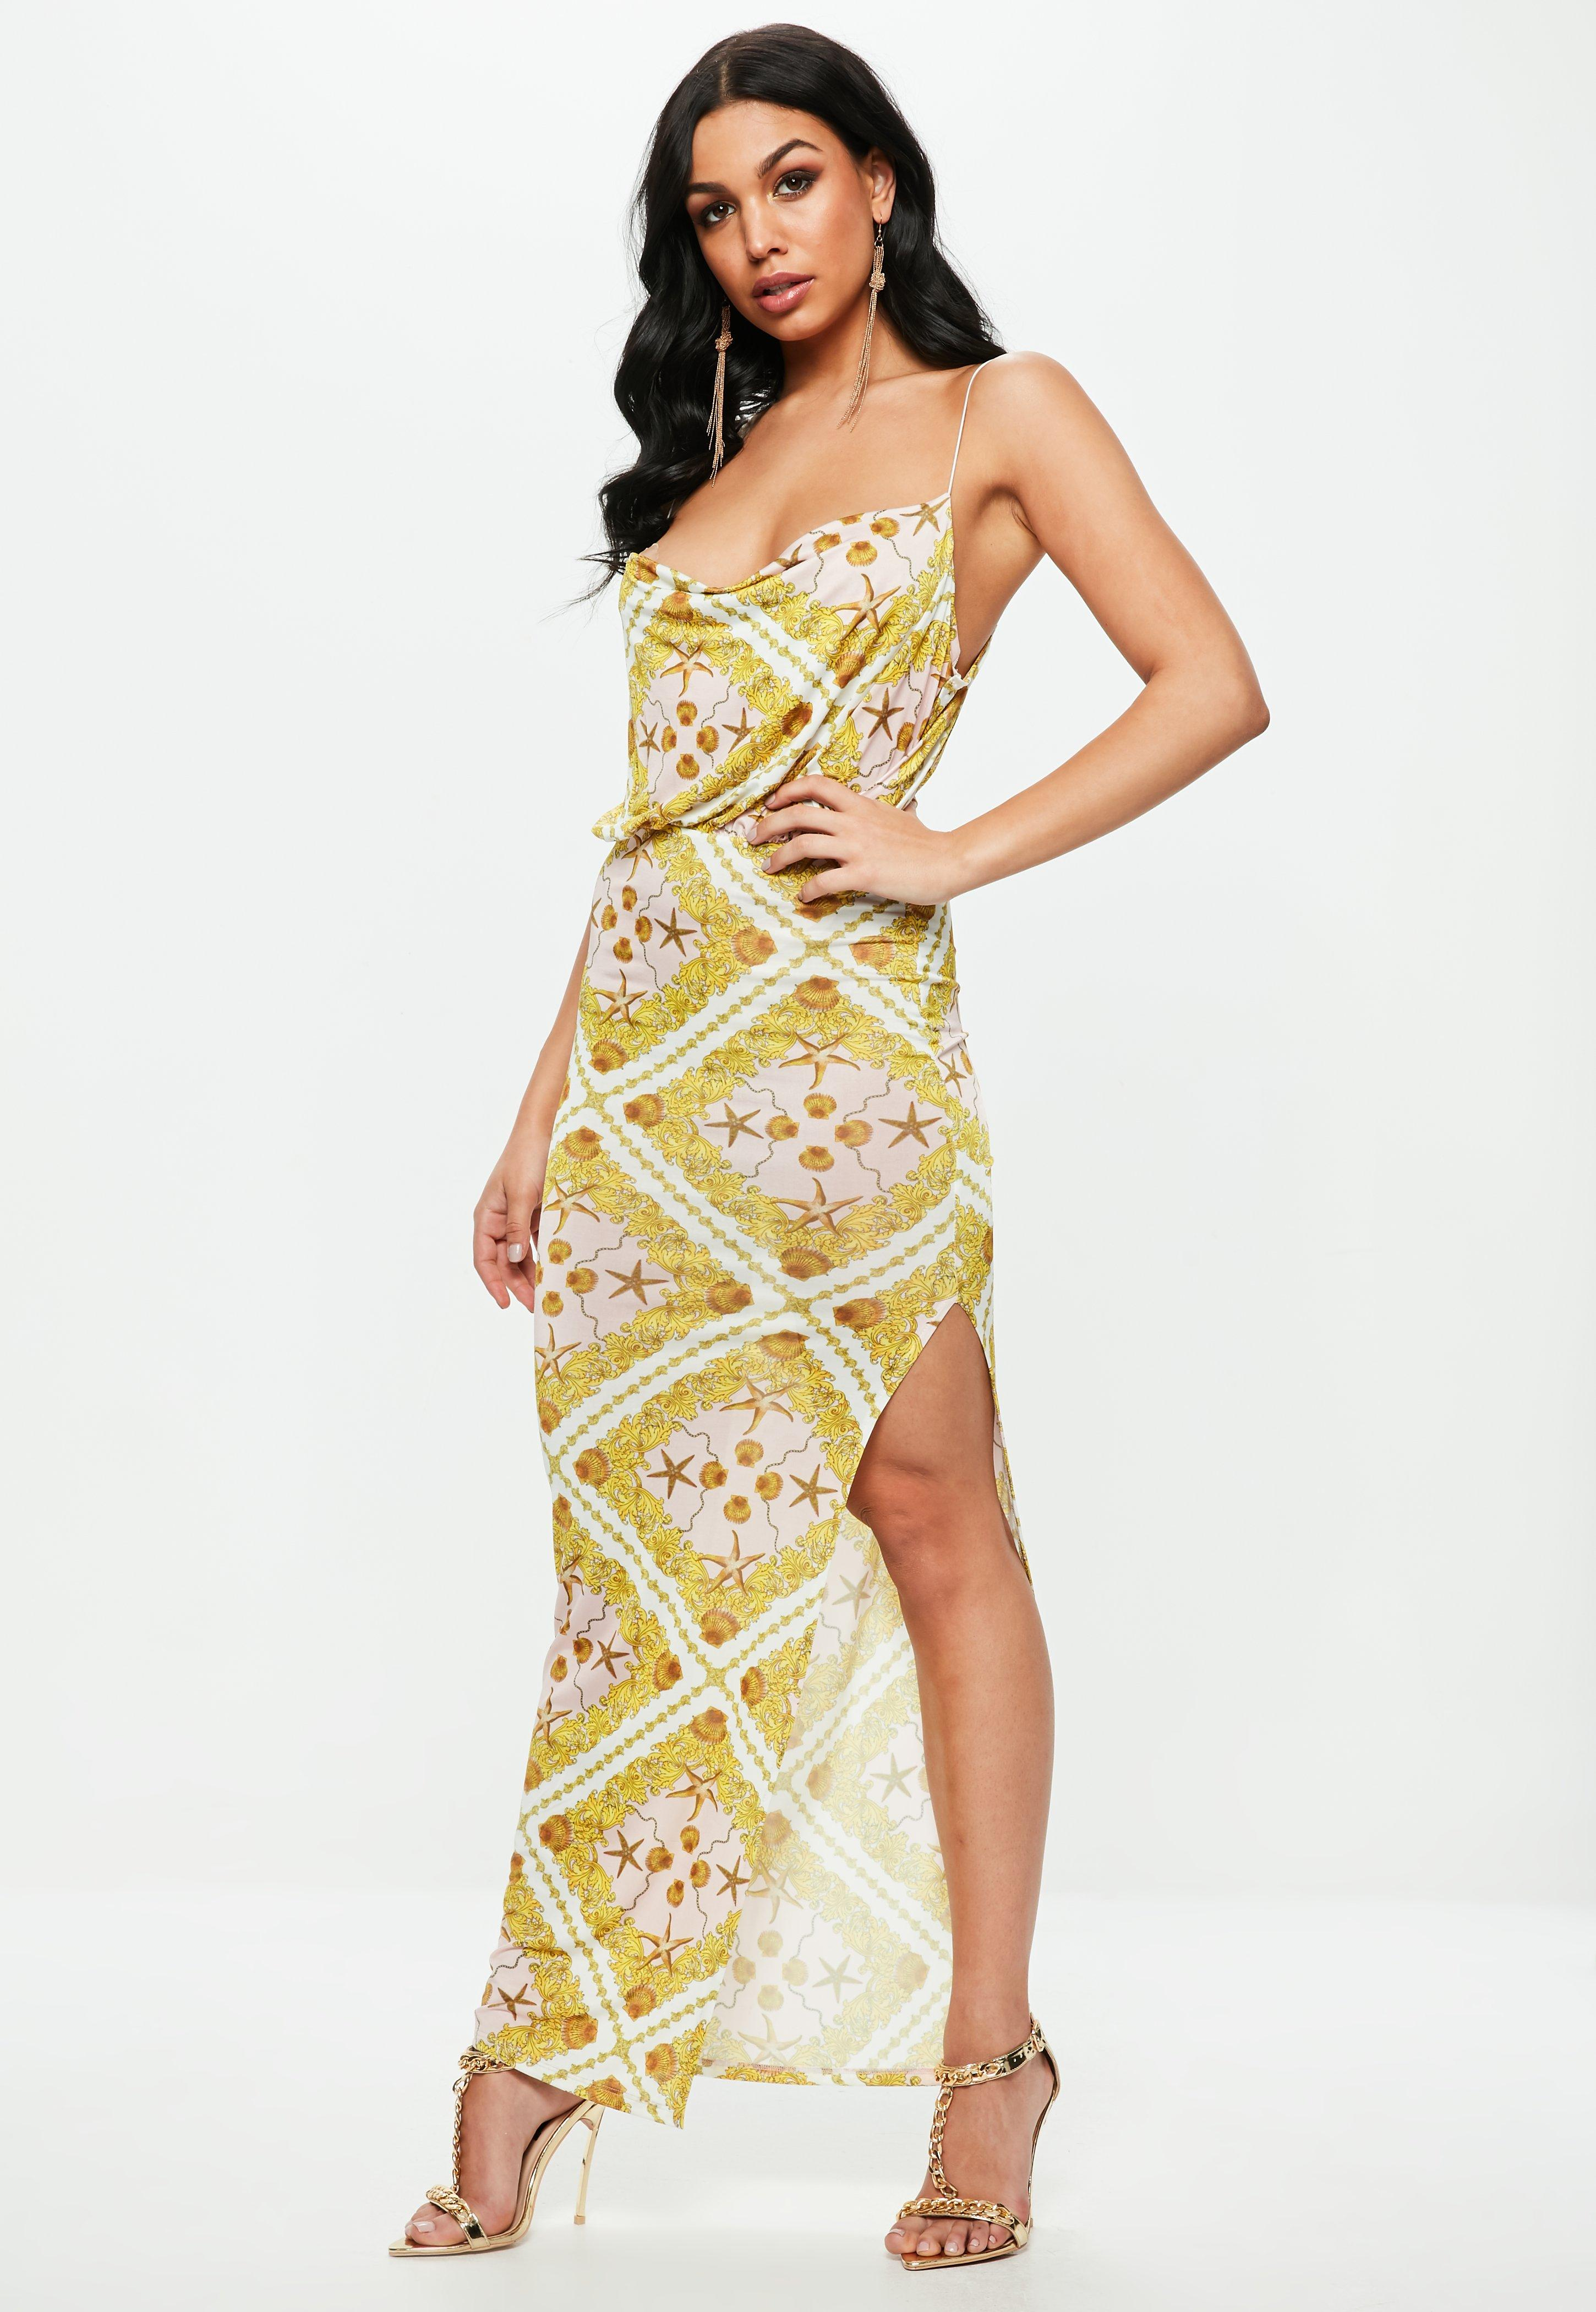 Get Authentic Missguided Printed Cowl Maxi Dress Buy Cheap Get To Buy Huge Surprise Outlet Order Online Looking For Cheap Price jBZqQt8SO